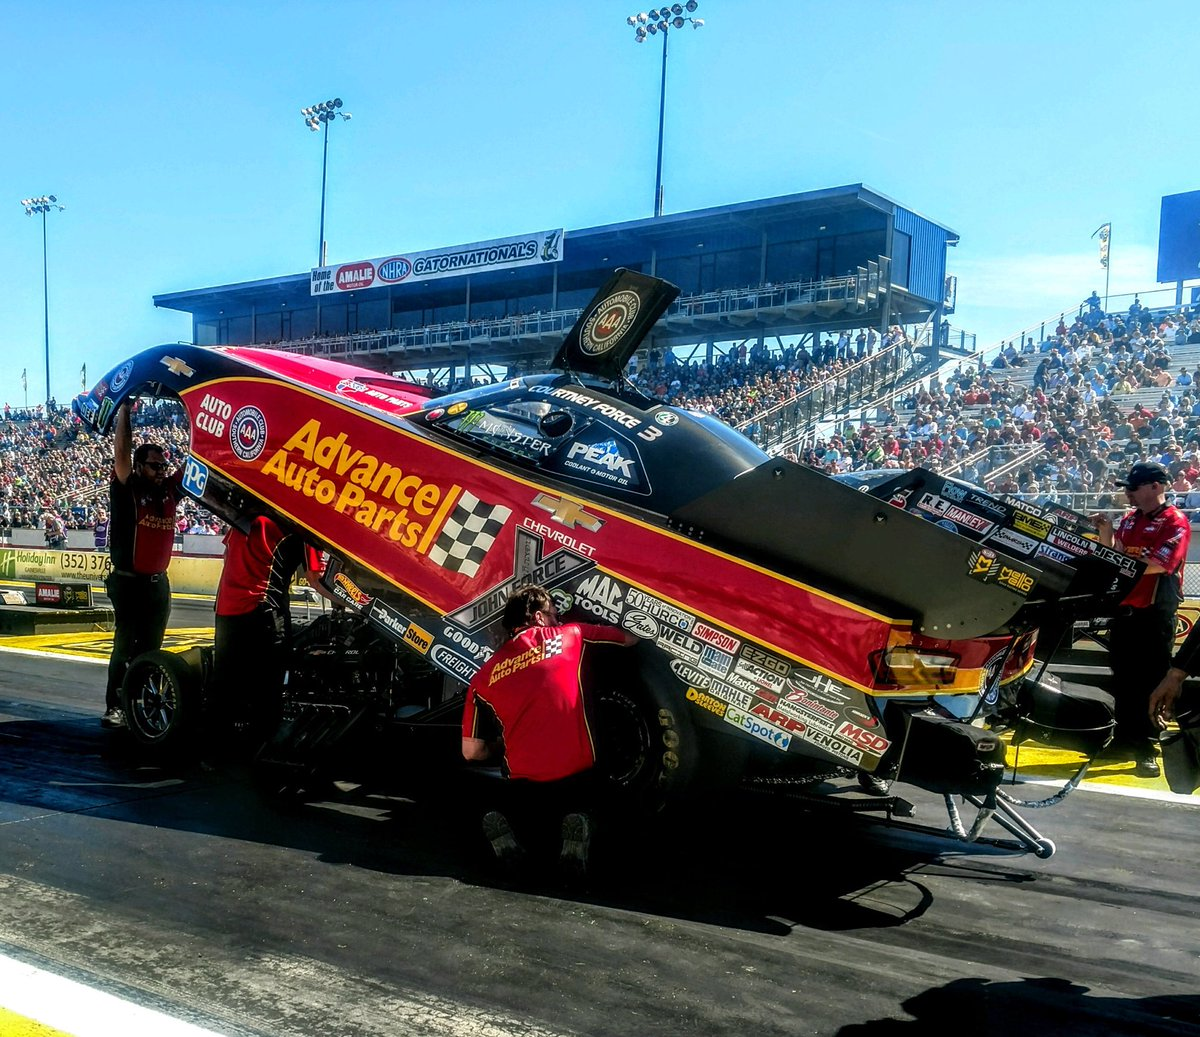 The top 3 qualified cars in funny car are separated by only a few thousandths of a second. 😳 Proud to say our @AdvanceAuto team is in the #2 spot with our 3.914 at 327mph! Solid pass with some pretty quick cars out there. Proud of my guys today. 👍🏻🏁 #AdvanceXForce